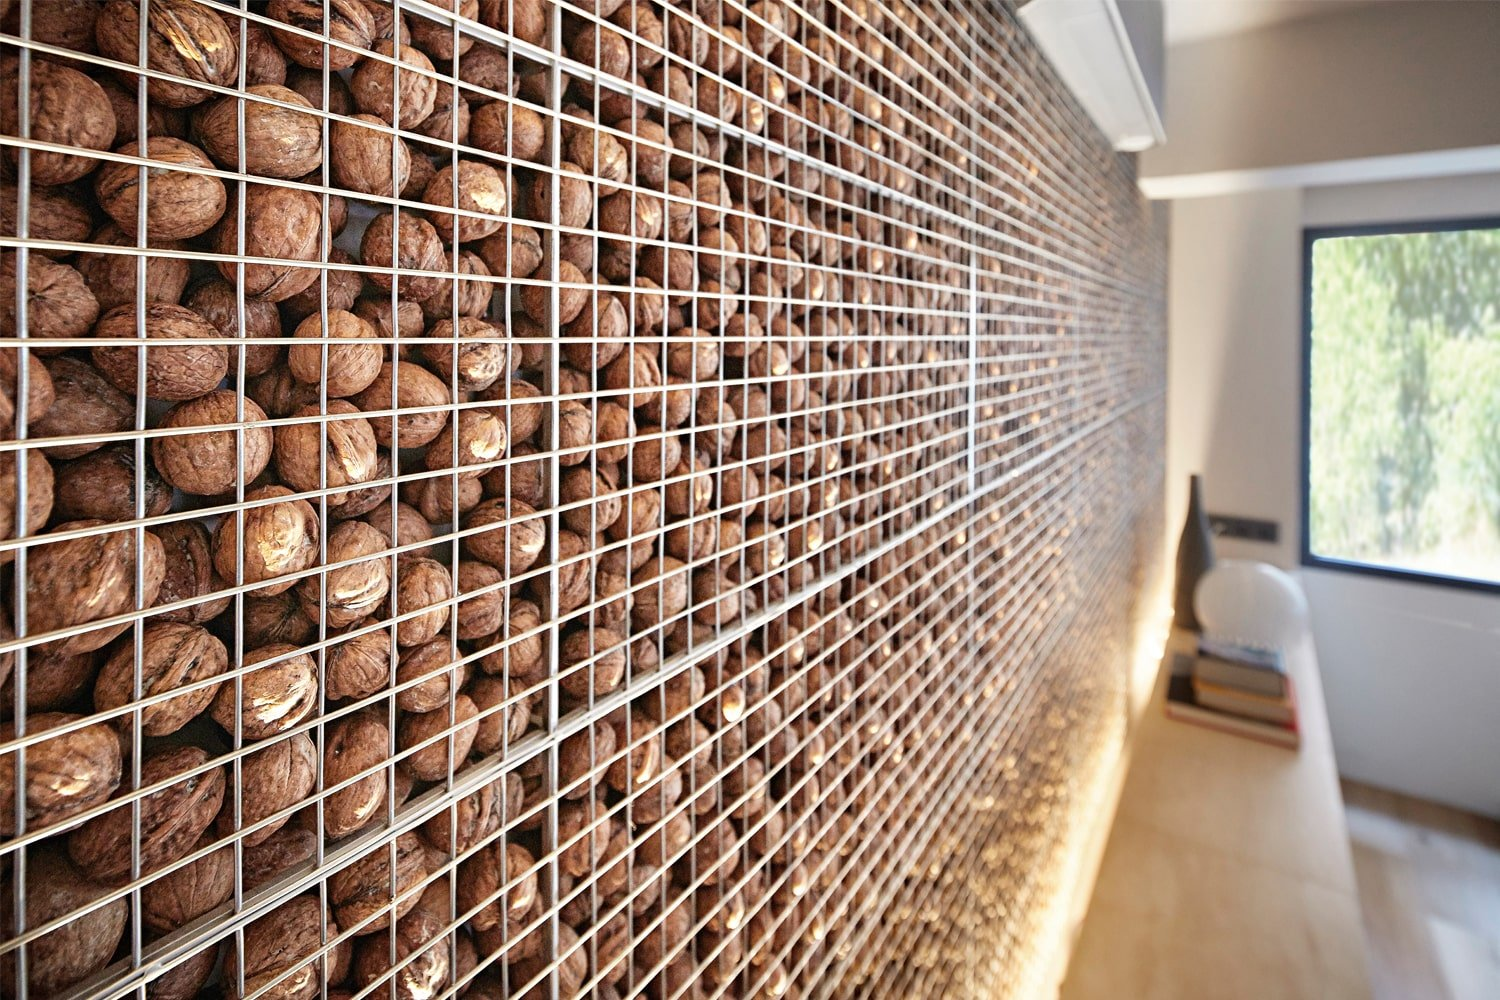 A closer look at the unique wall that adorns the sofa reveals that it is actually made of walnut shells inside a steel screen with lighting on its edges.